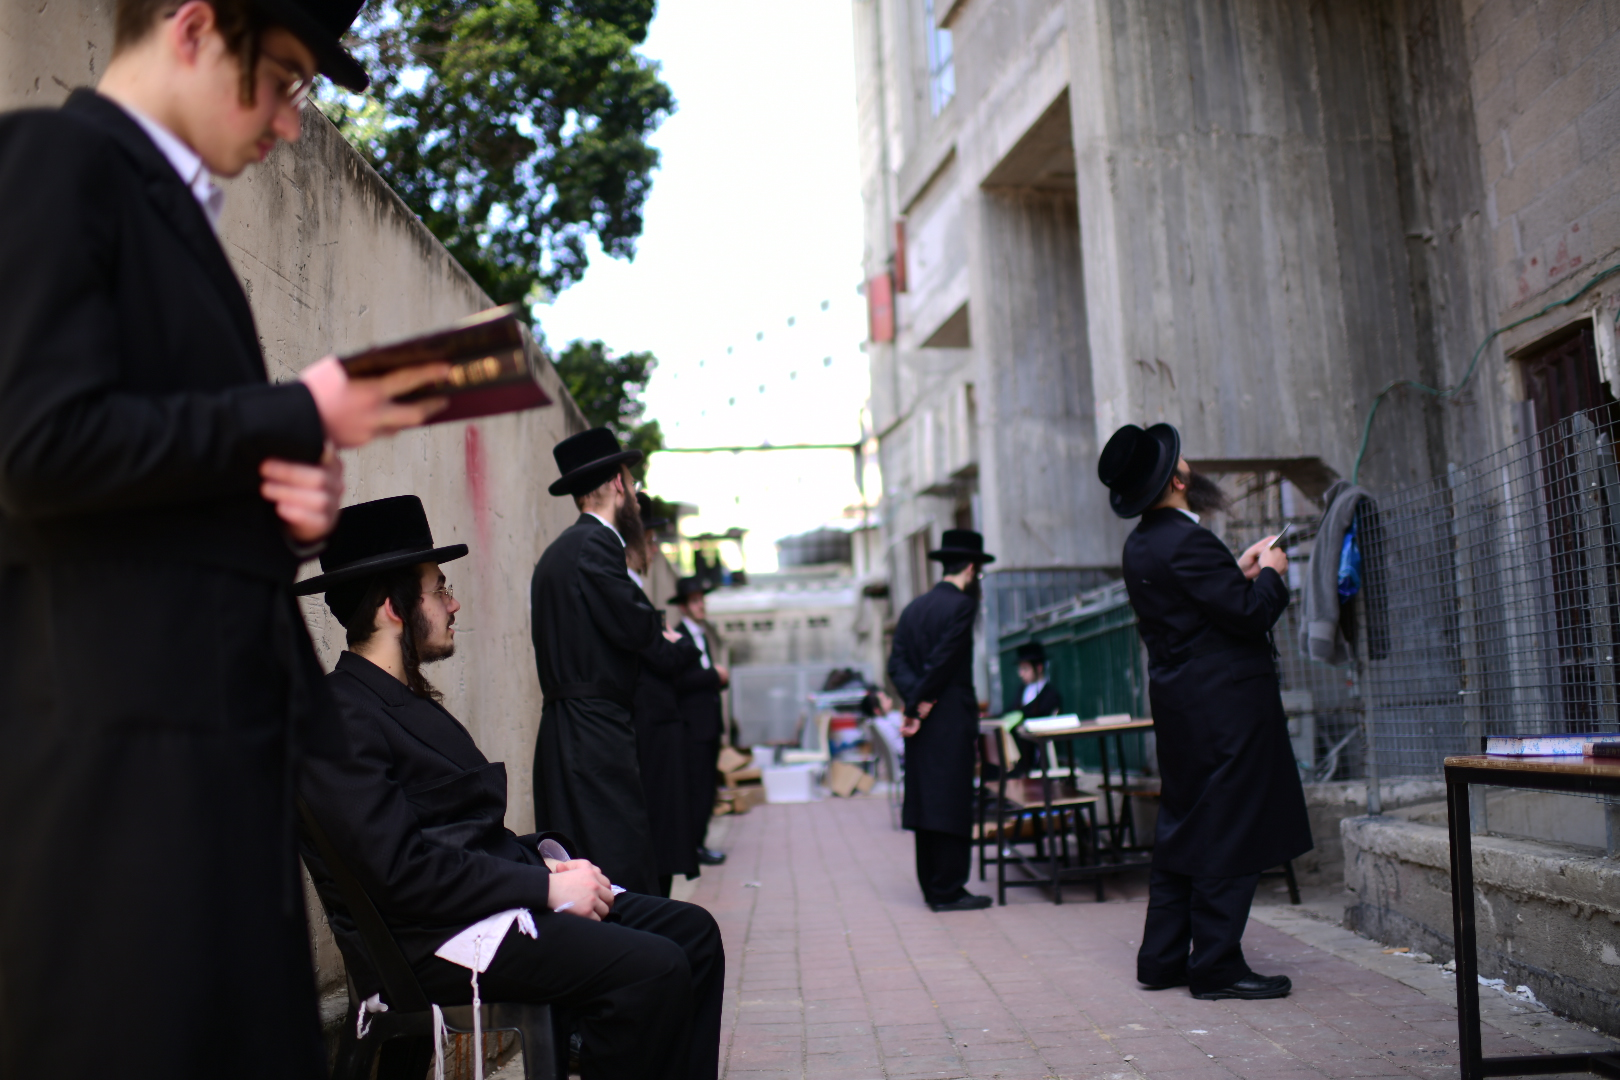 Israel's ultra-Orthodox town badly affected by coronavirus sealed off